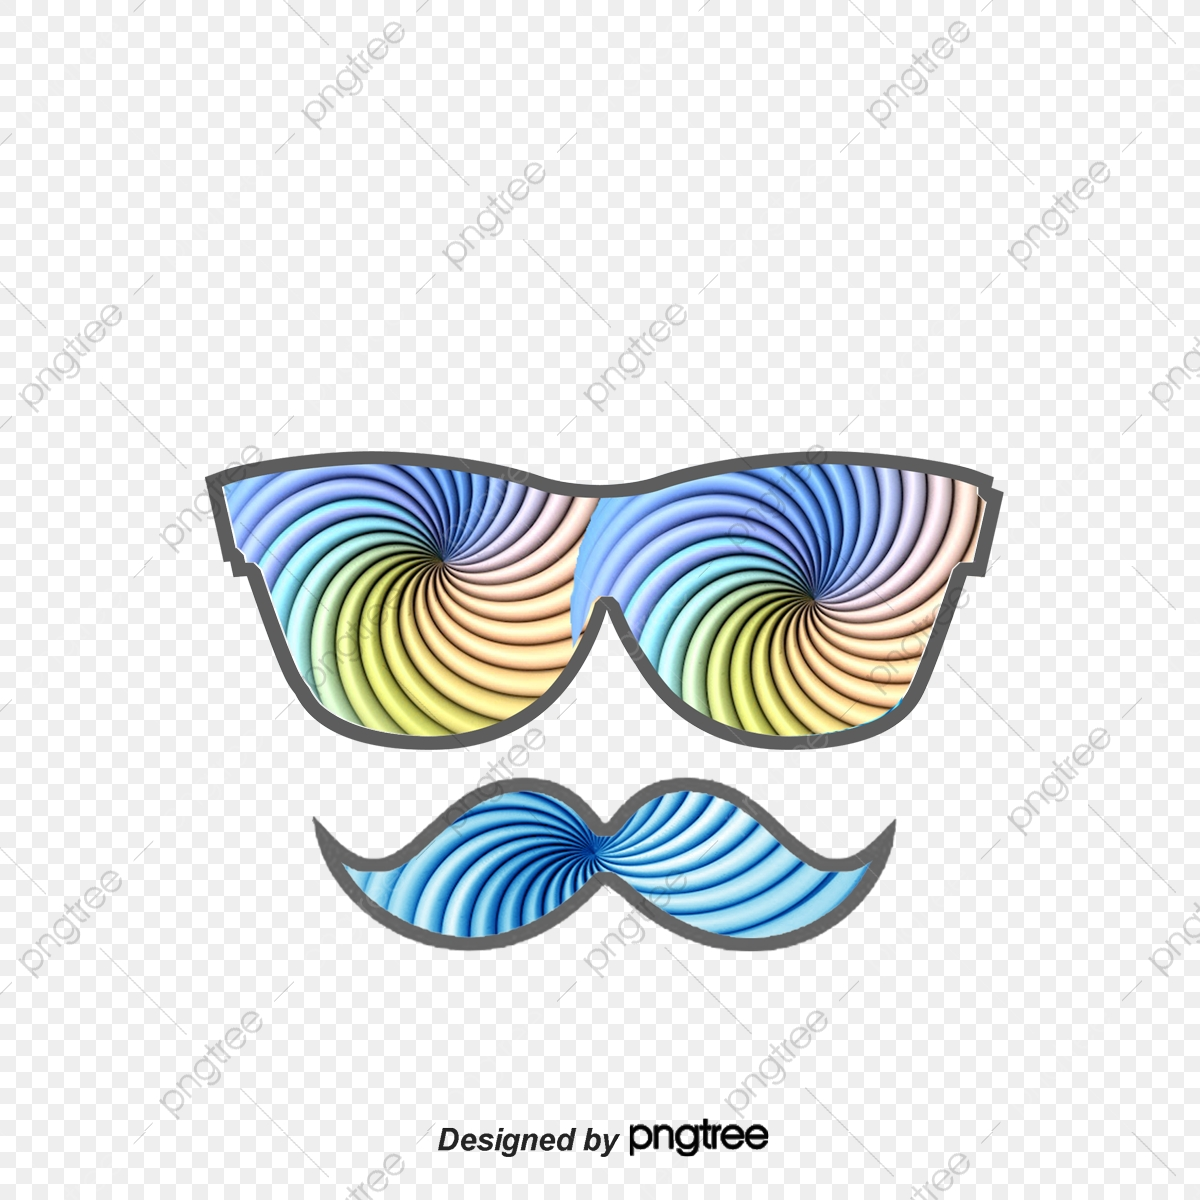 Creative Eye And Mustache, Color, Decoration, Illustration PNG